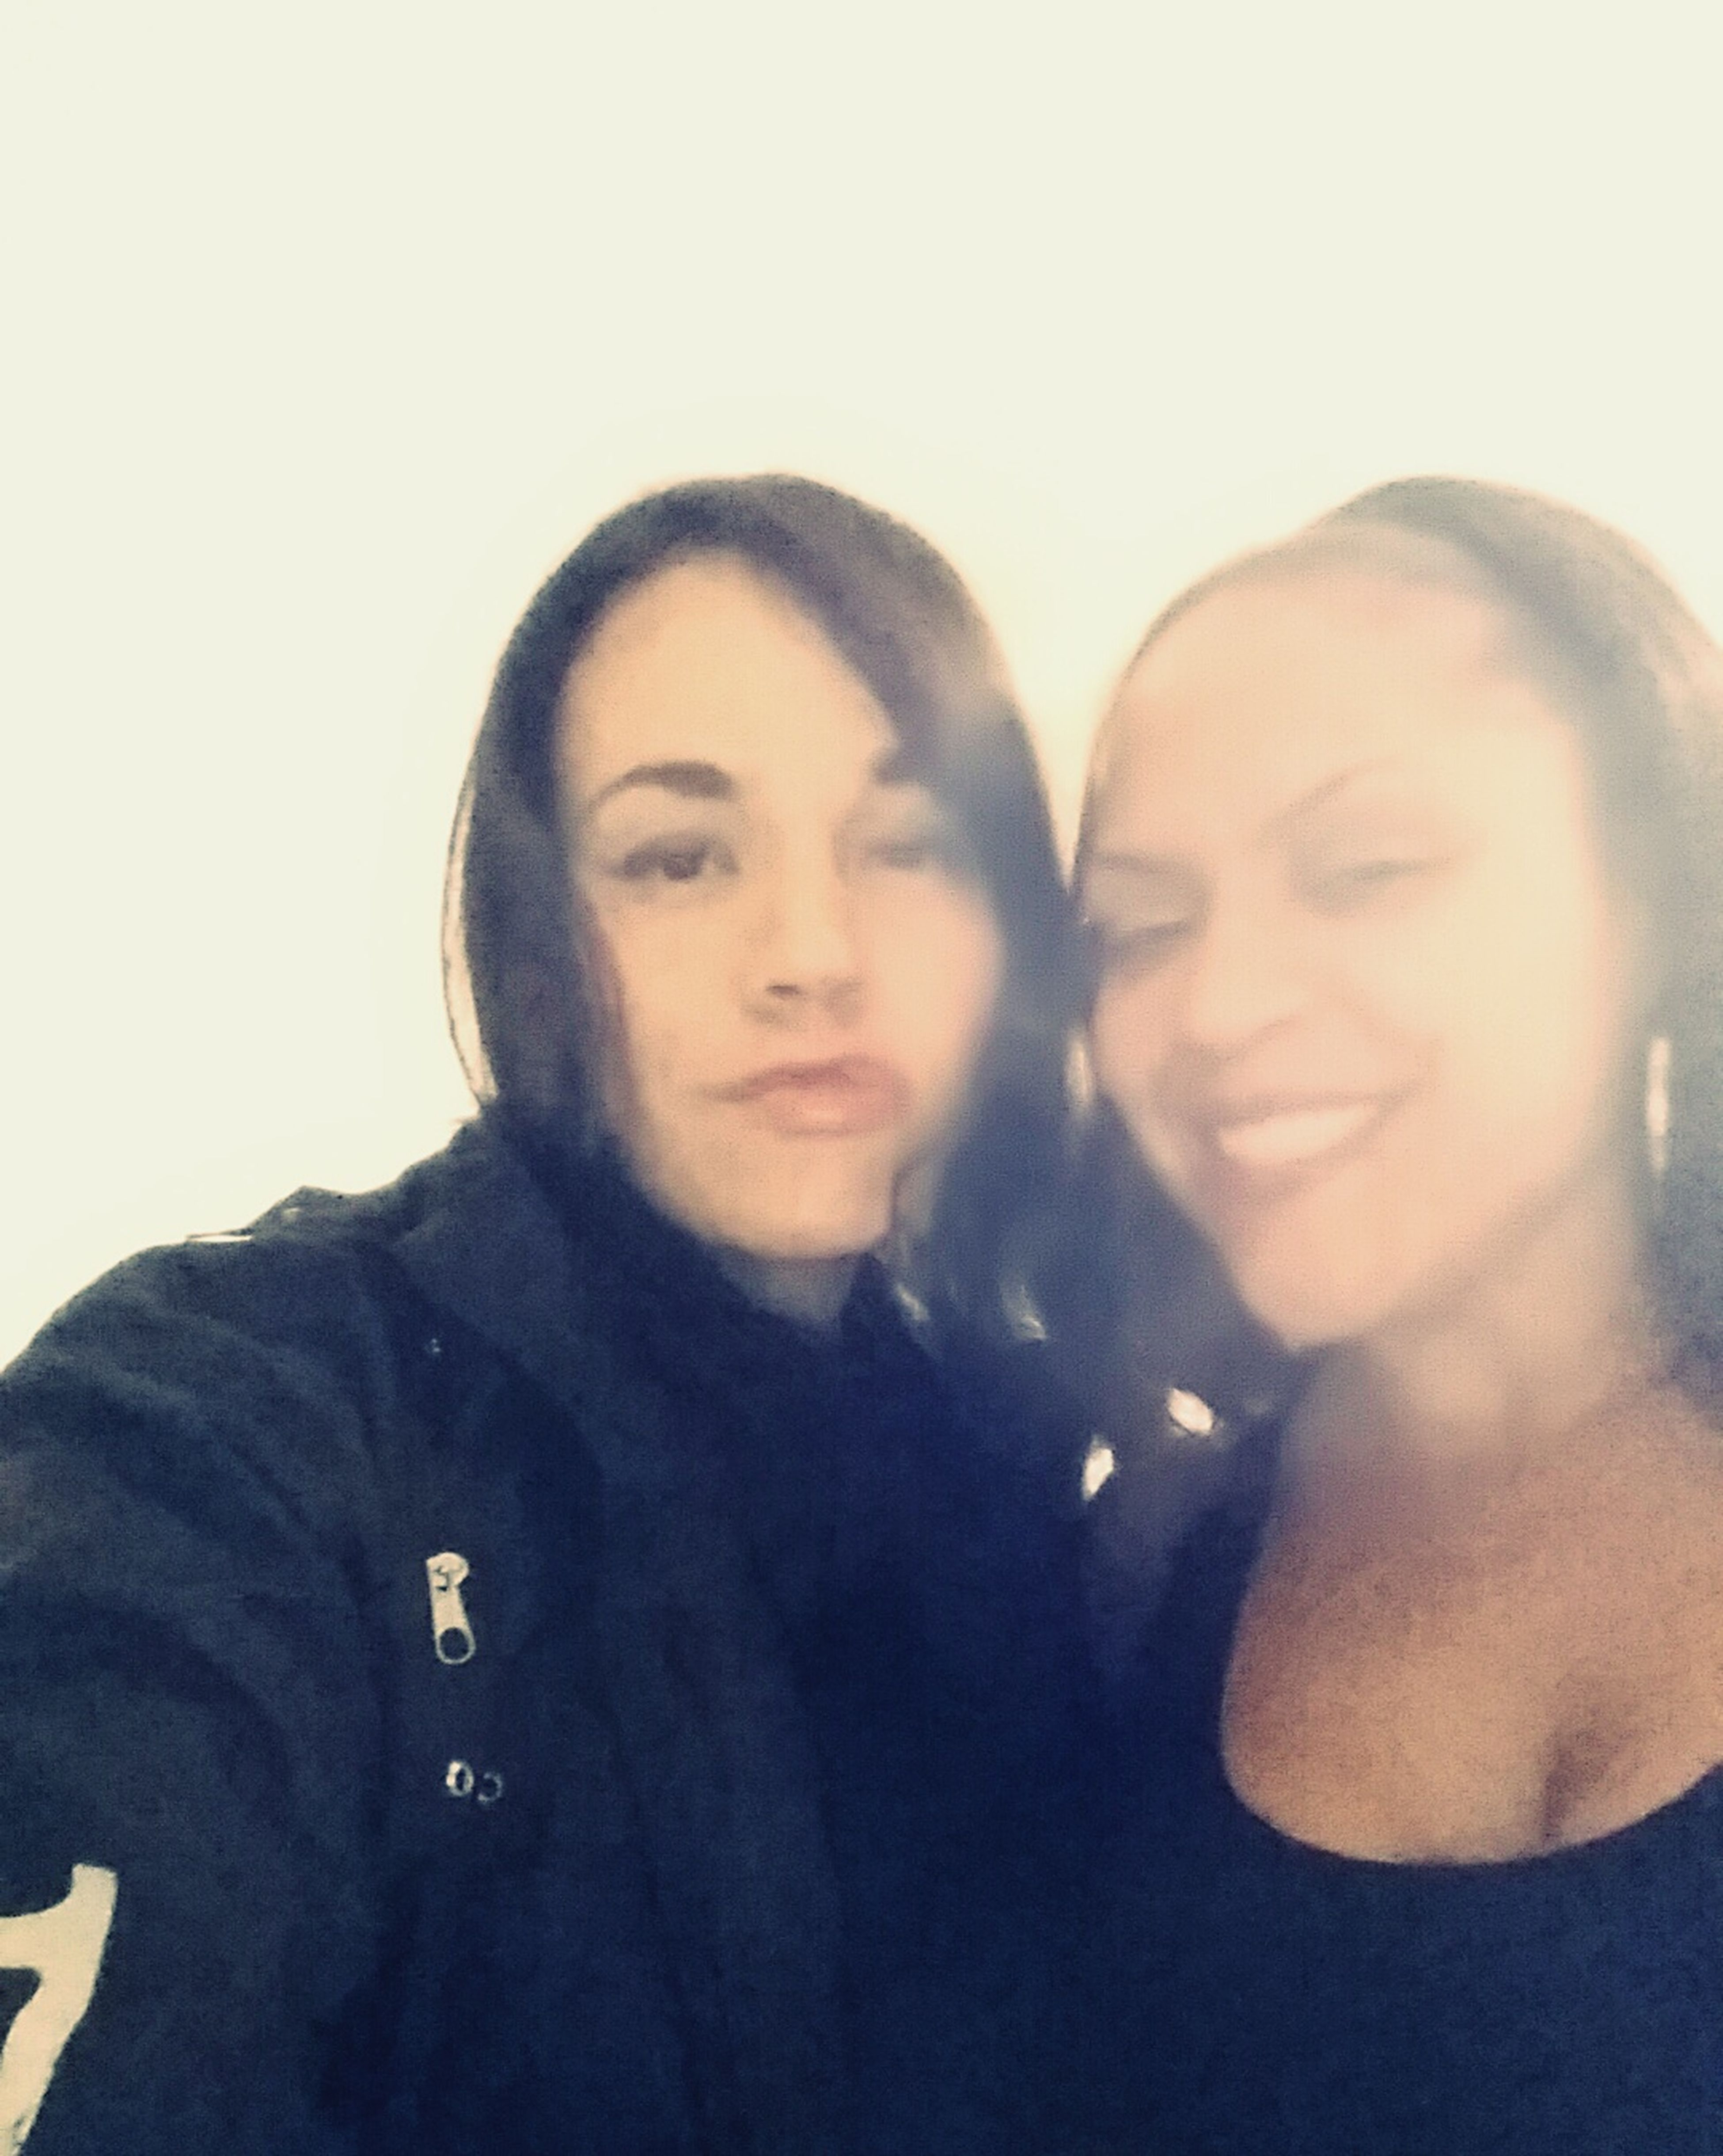 Me Wifey And I ... Team Lesbian Lesbian Delicious